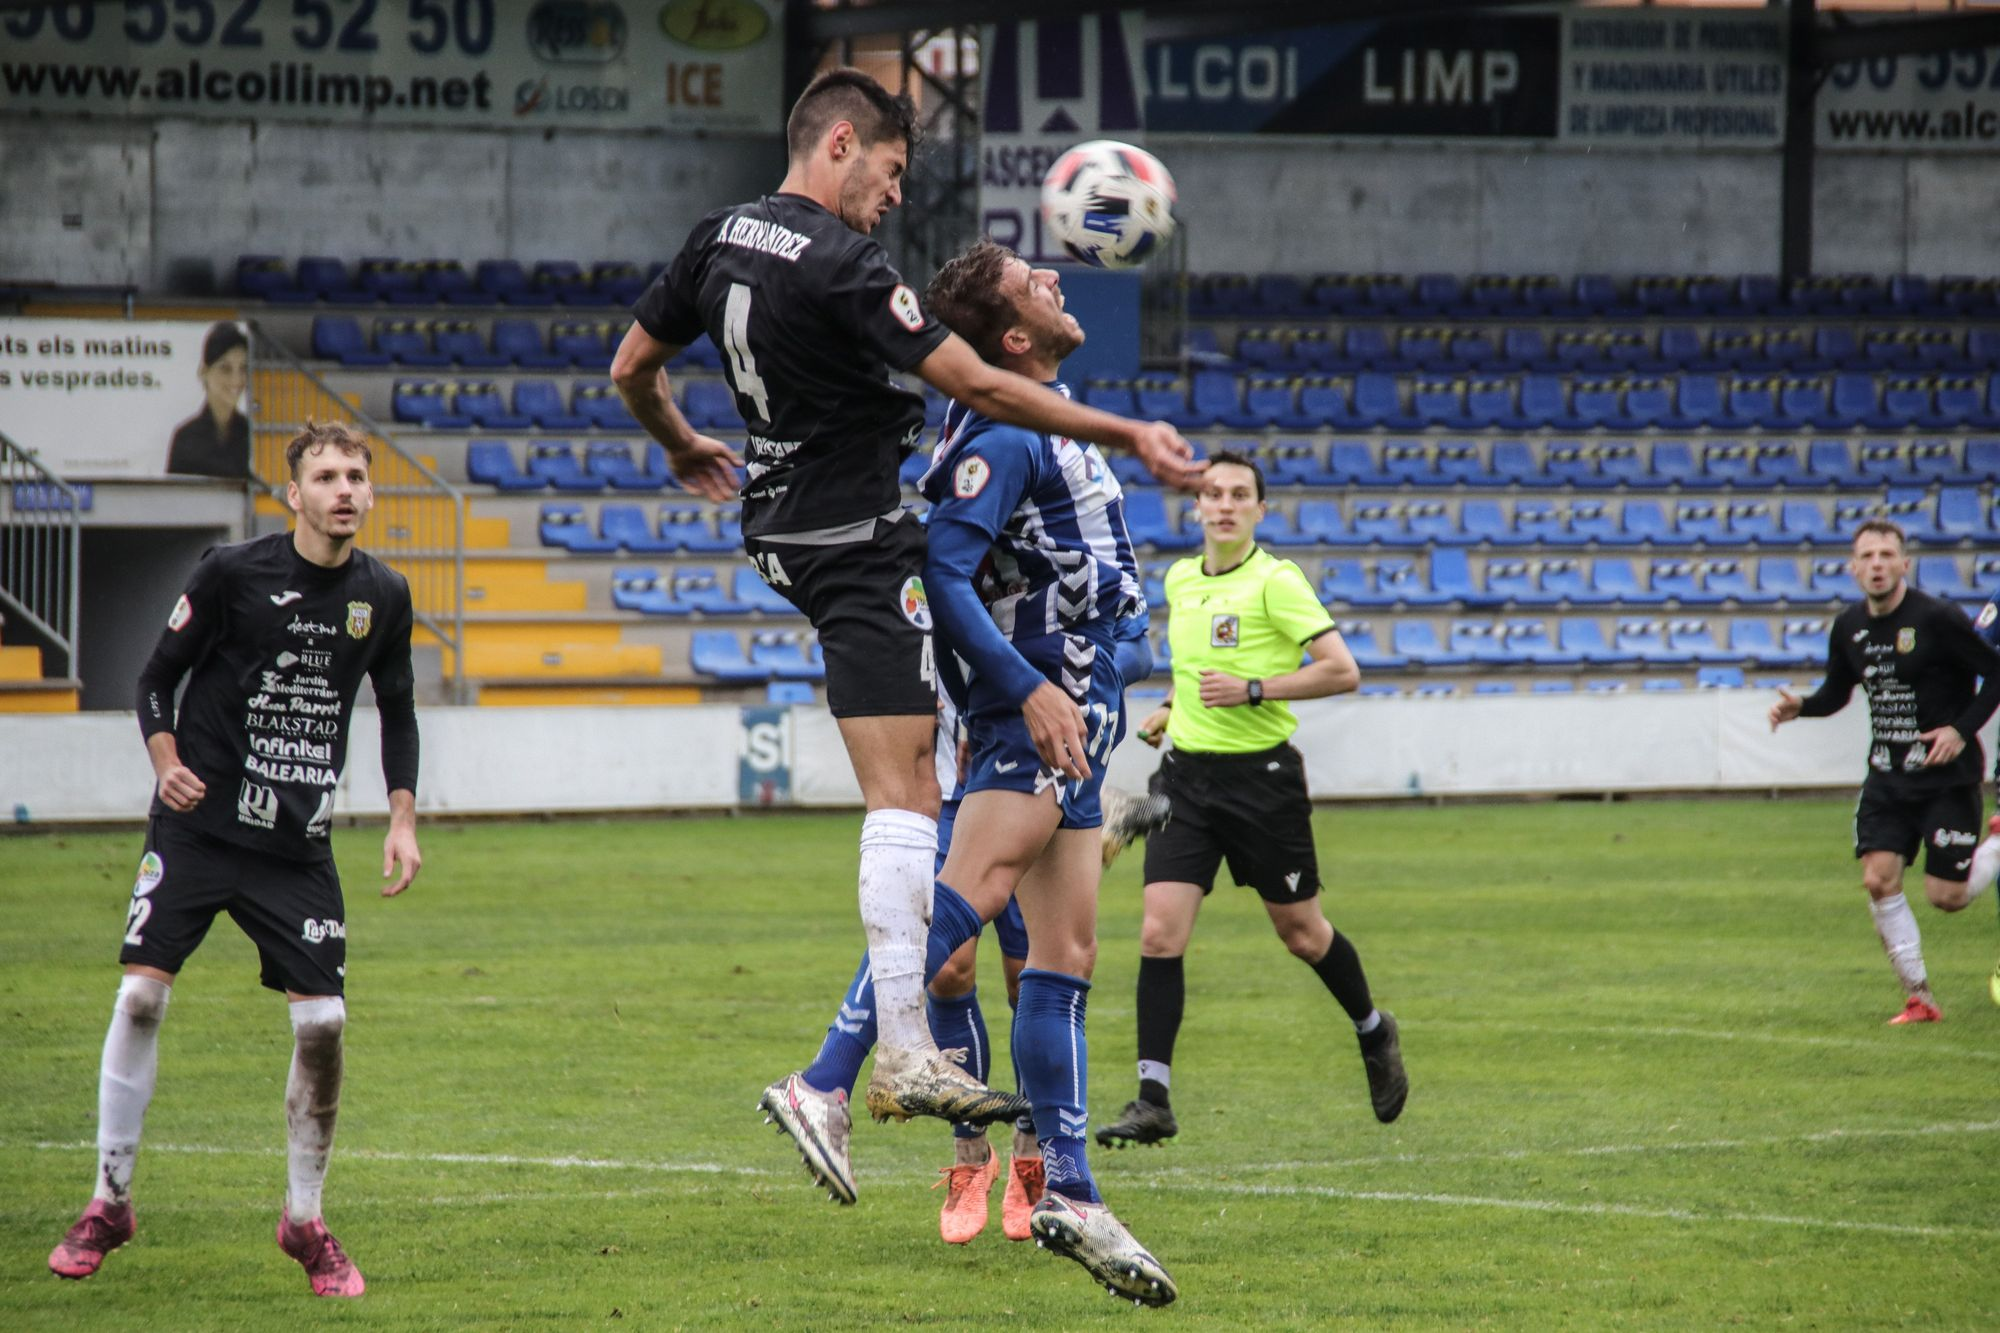 Alcoyano - Peña Deportiva: The images of the match